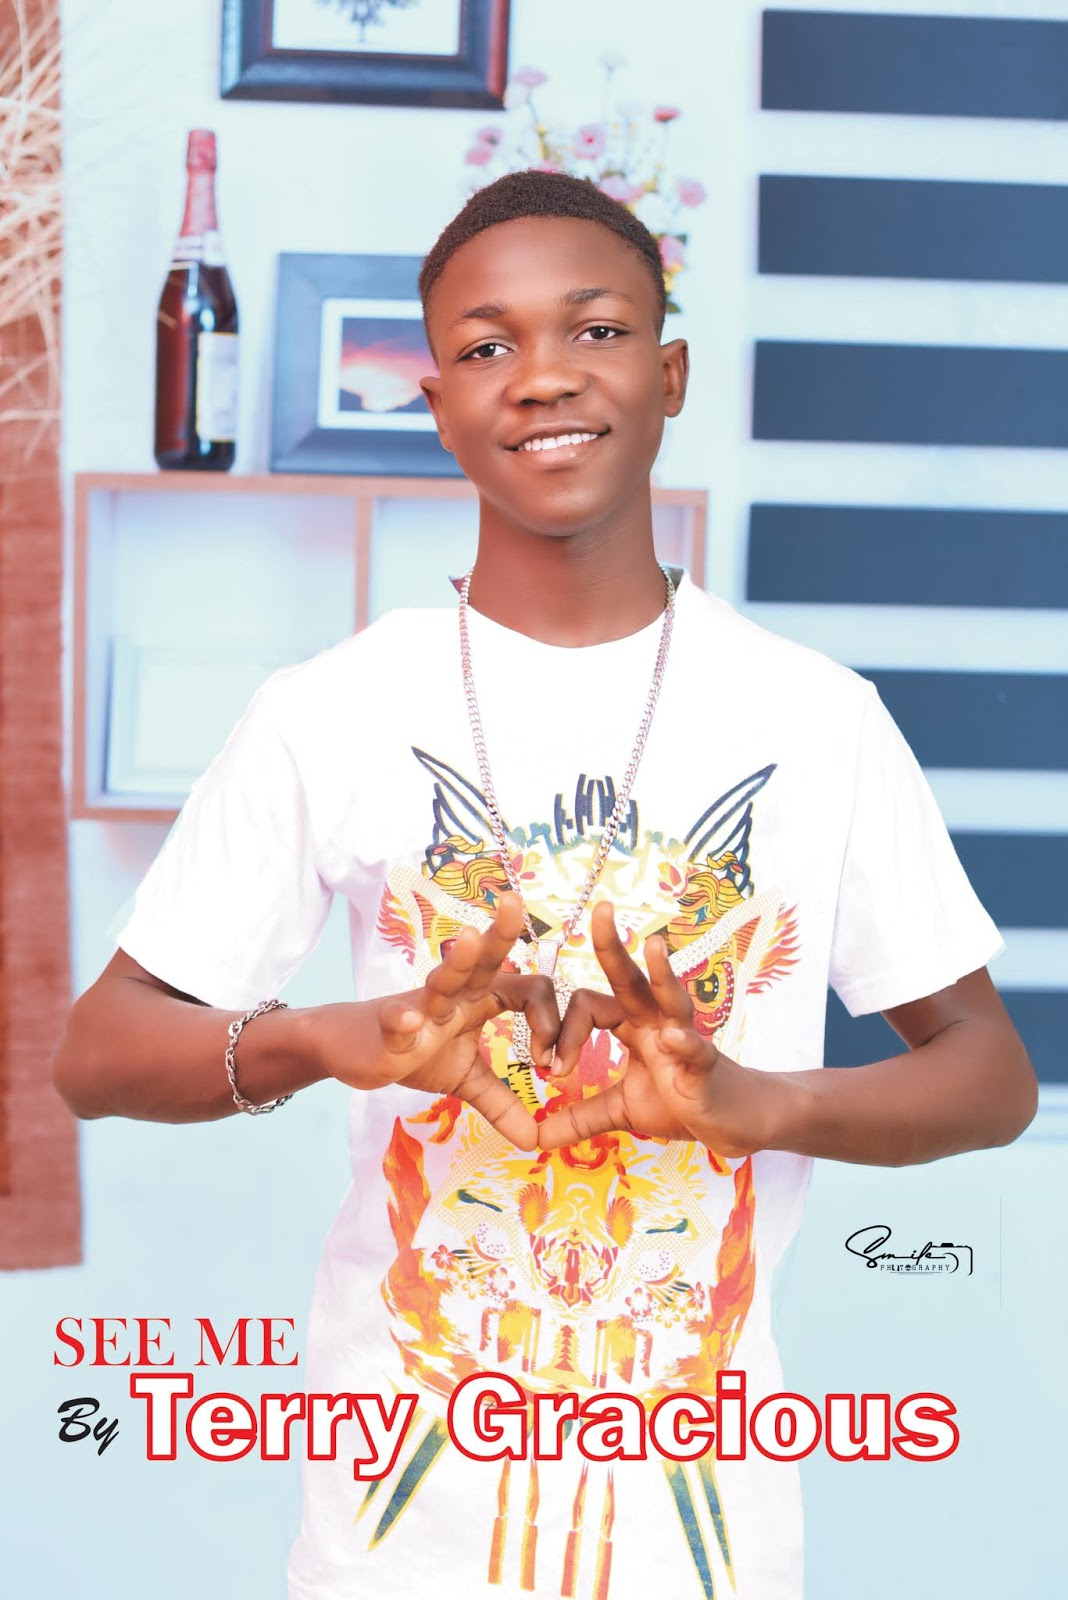 Download Mp3 Terry Gracious See Me But folake oo them ask me say who you be to me i tell them say you be my baby i them say you go dey for me see!! download mp3 terry gracious see me